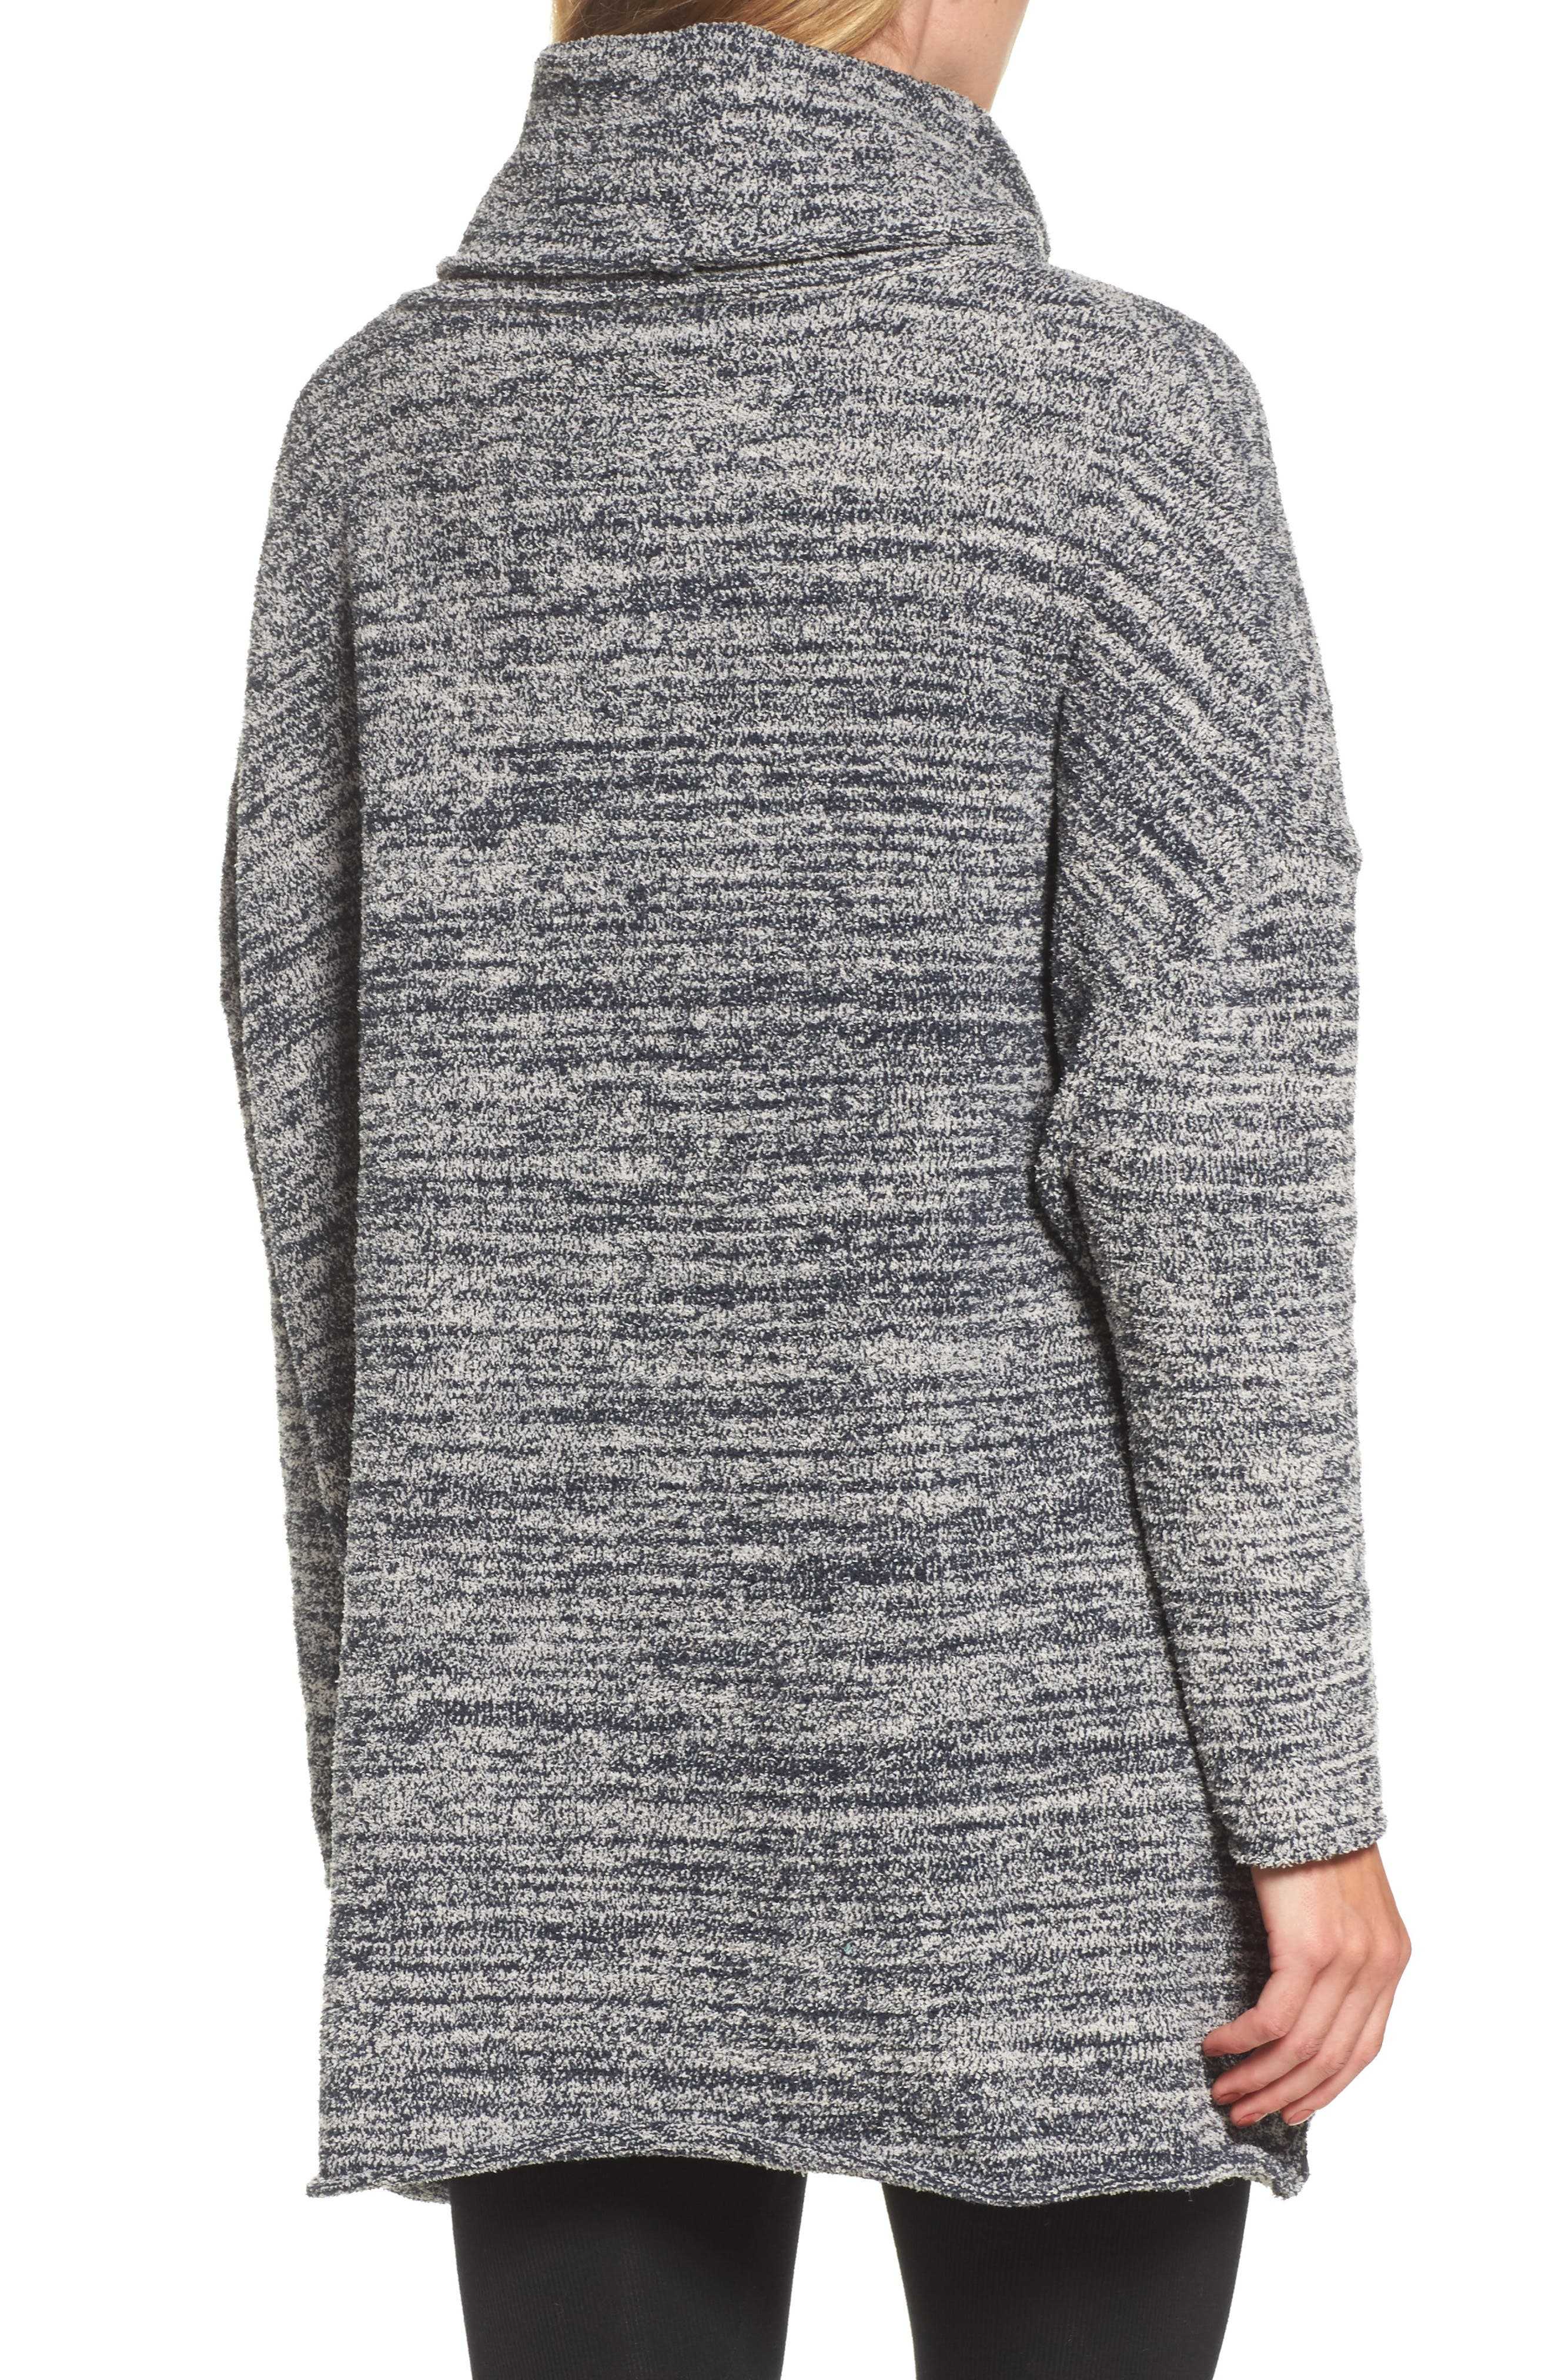 Cozychic<sup>®</sup> Lounge Pullover,                             Alternate thumbnail 2, color,                             Indigo/ Stone Heathered